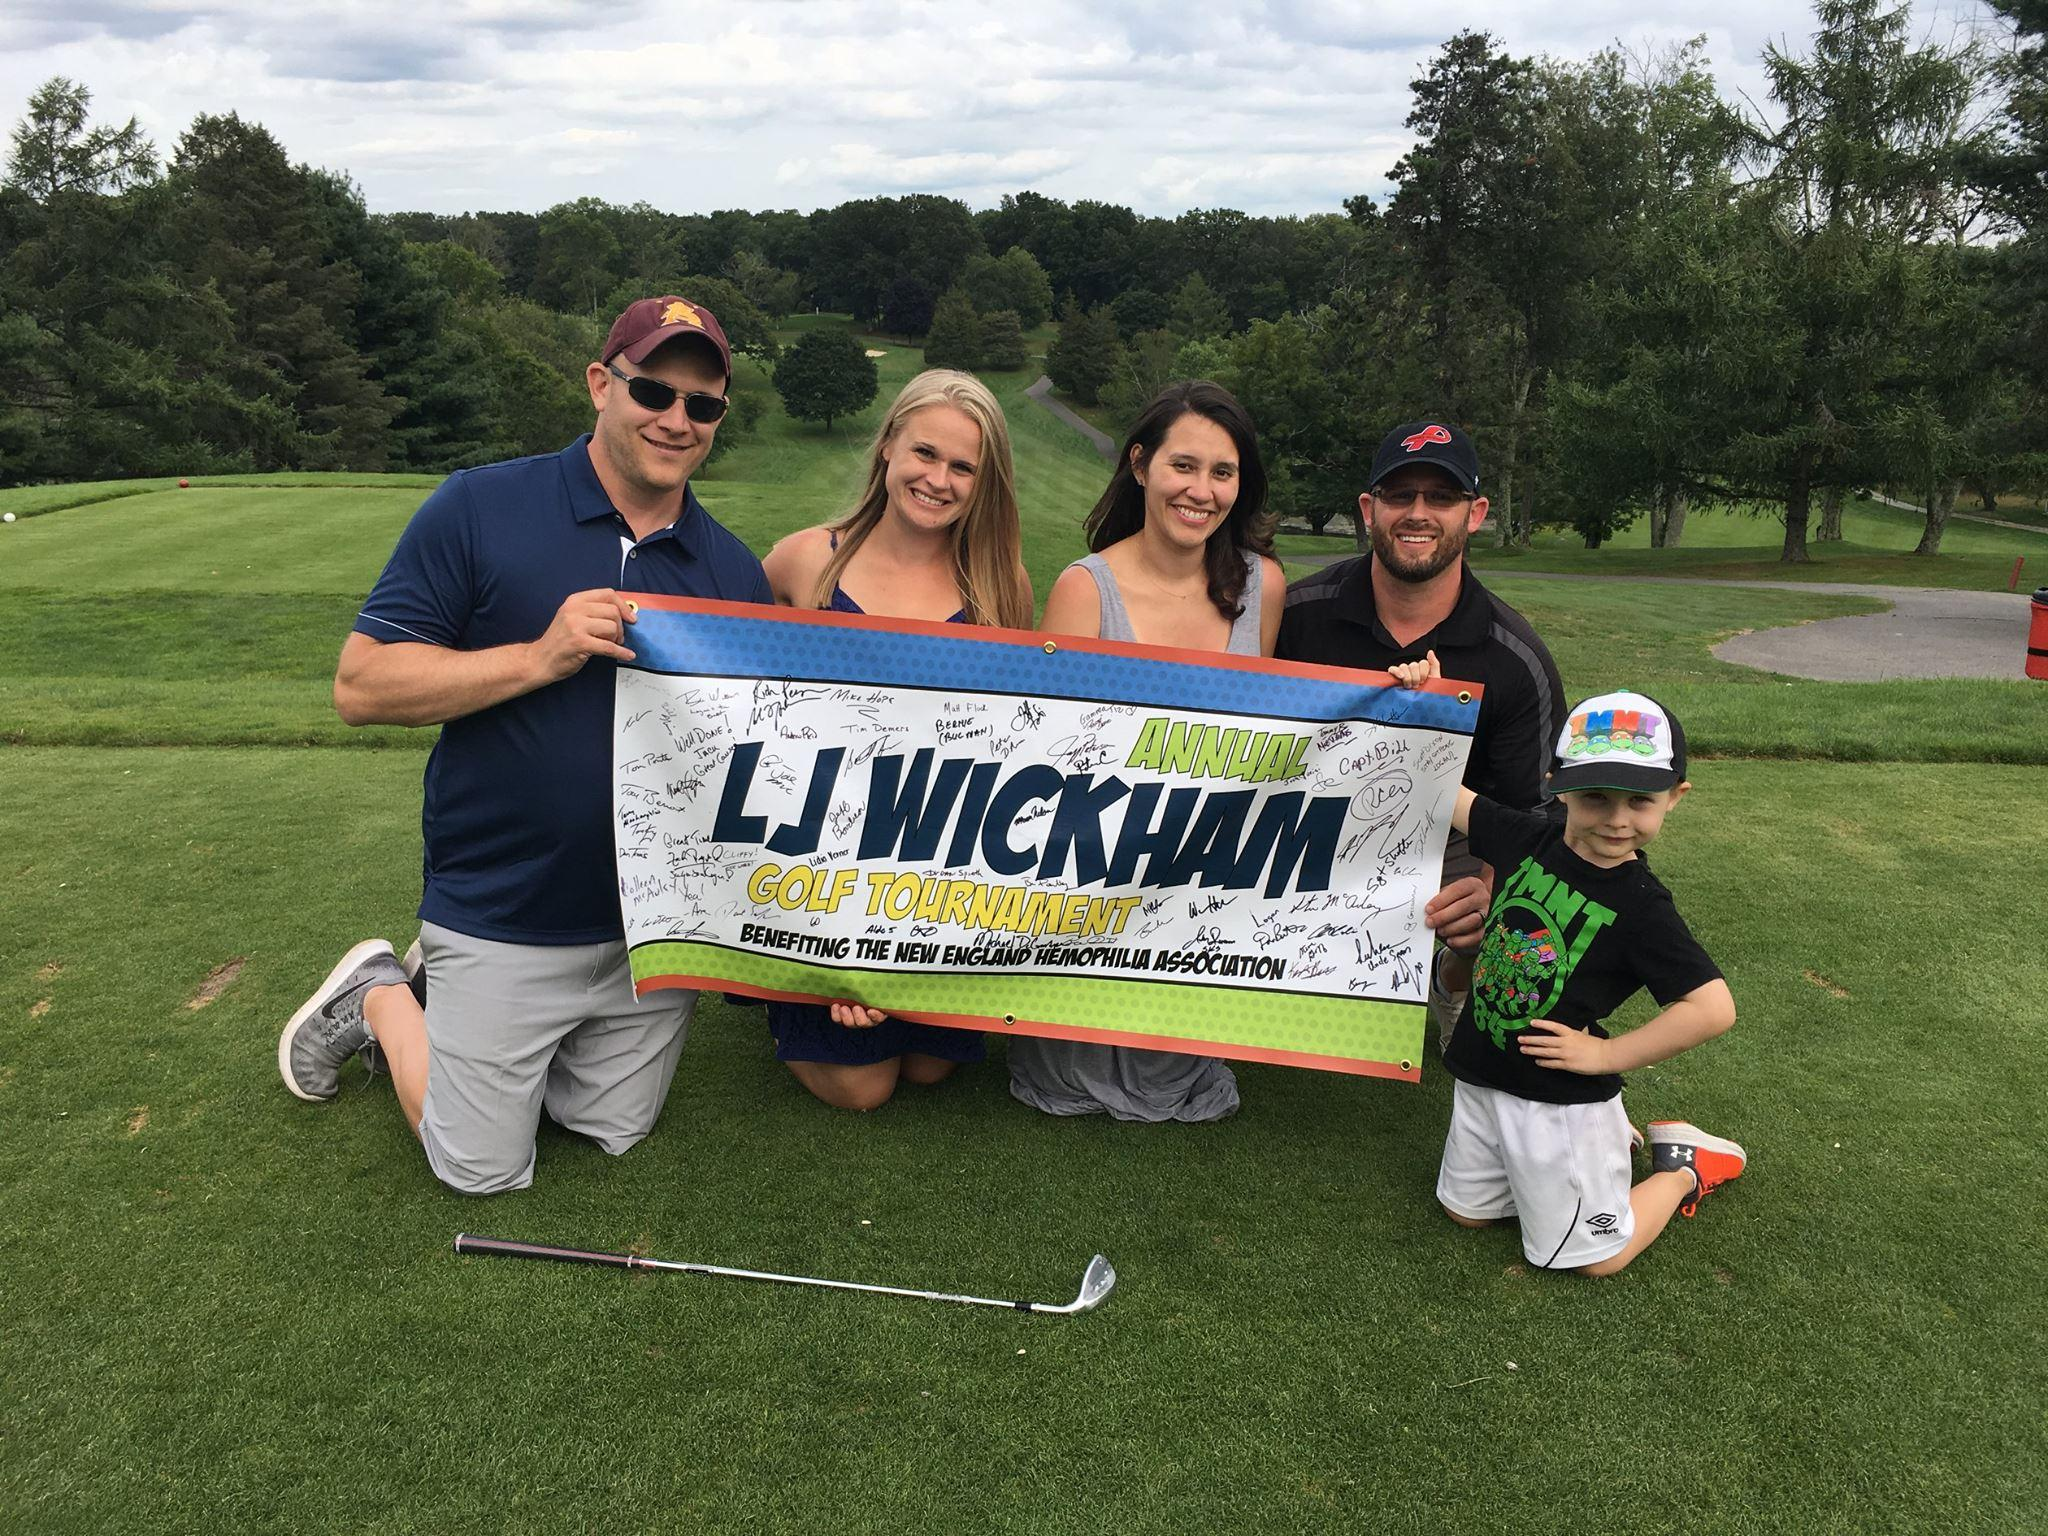 LJ Wickham Golf Tournament